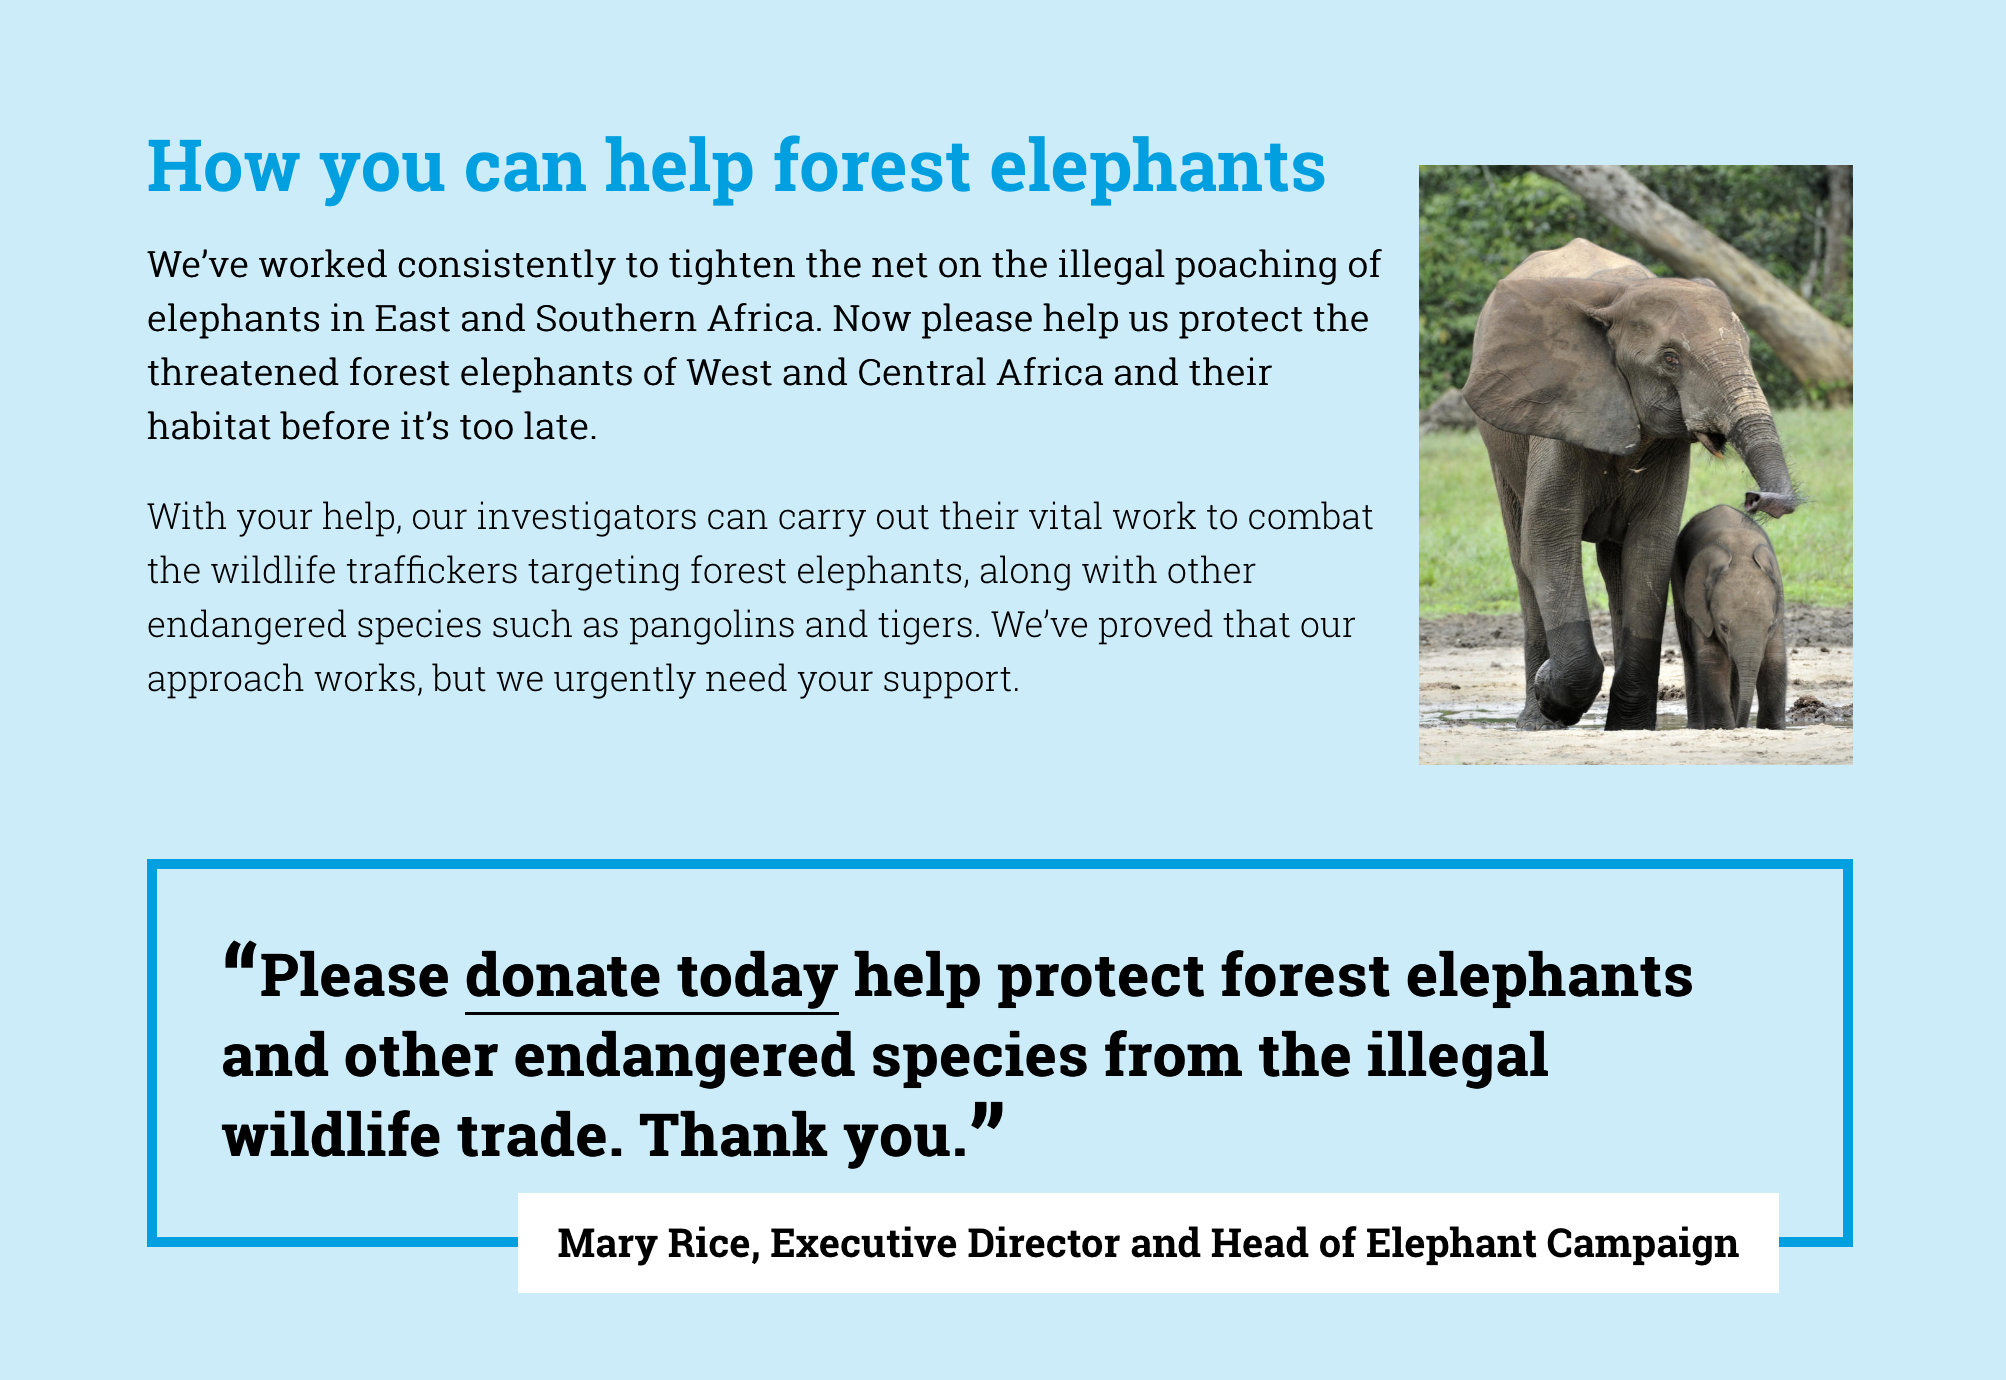 Web content about the forest elephant campaign by the Environmental Investigation Agency